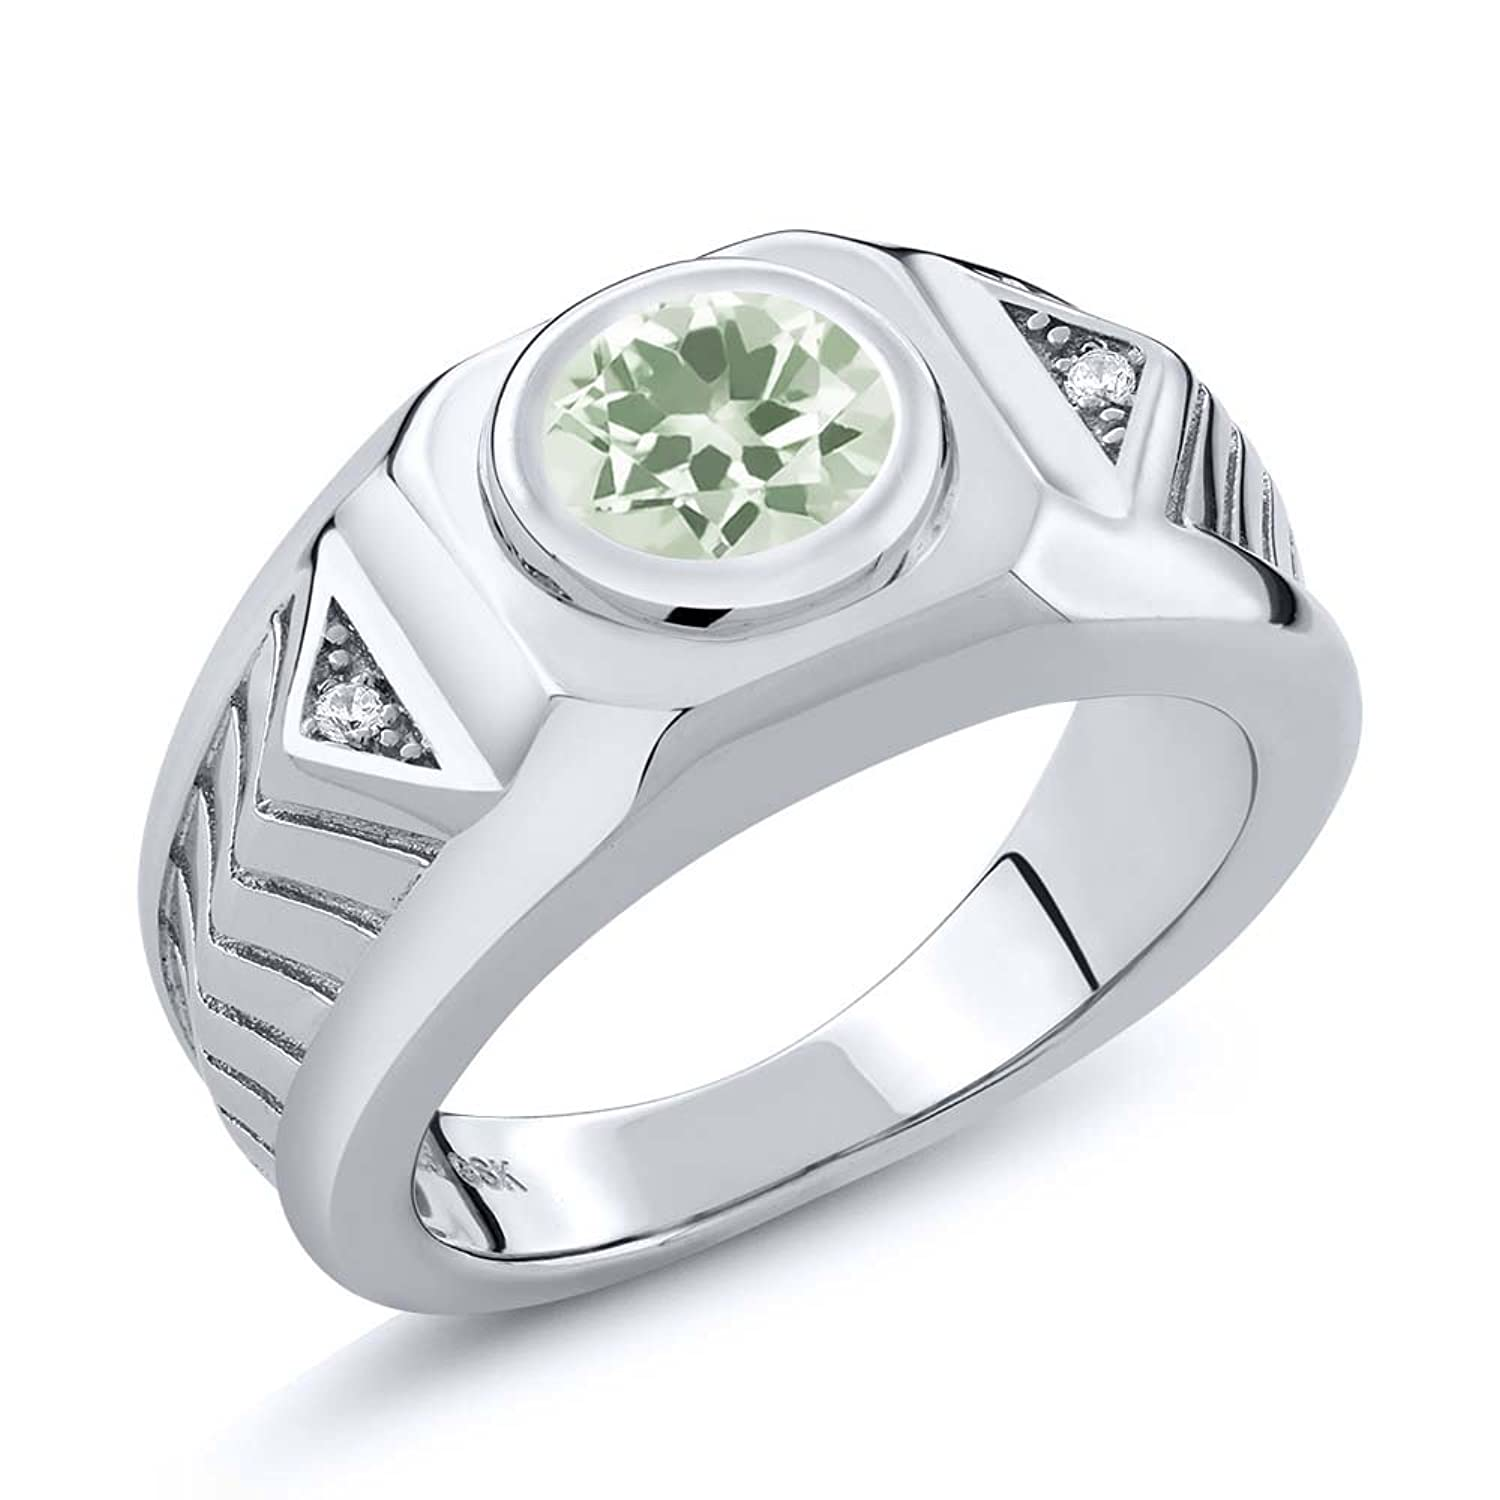 1.73 Ct Round Green Amethyst 925 Sterling Silver Men's Ring